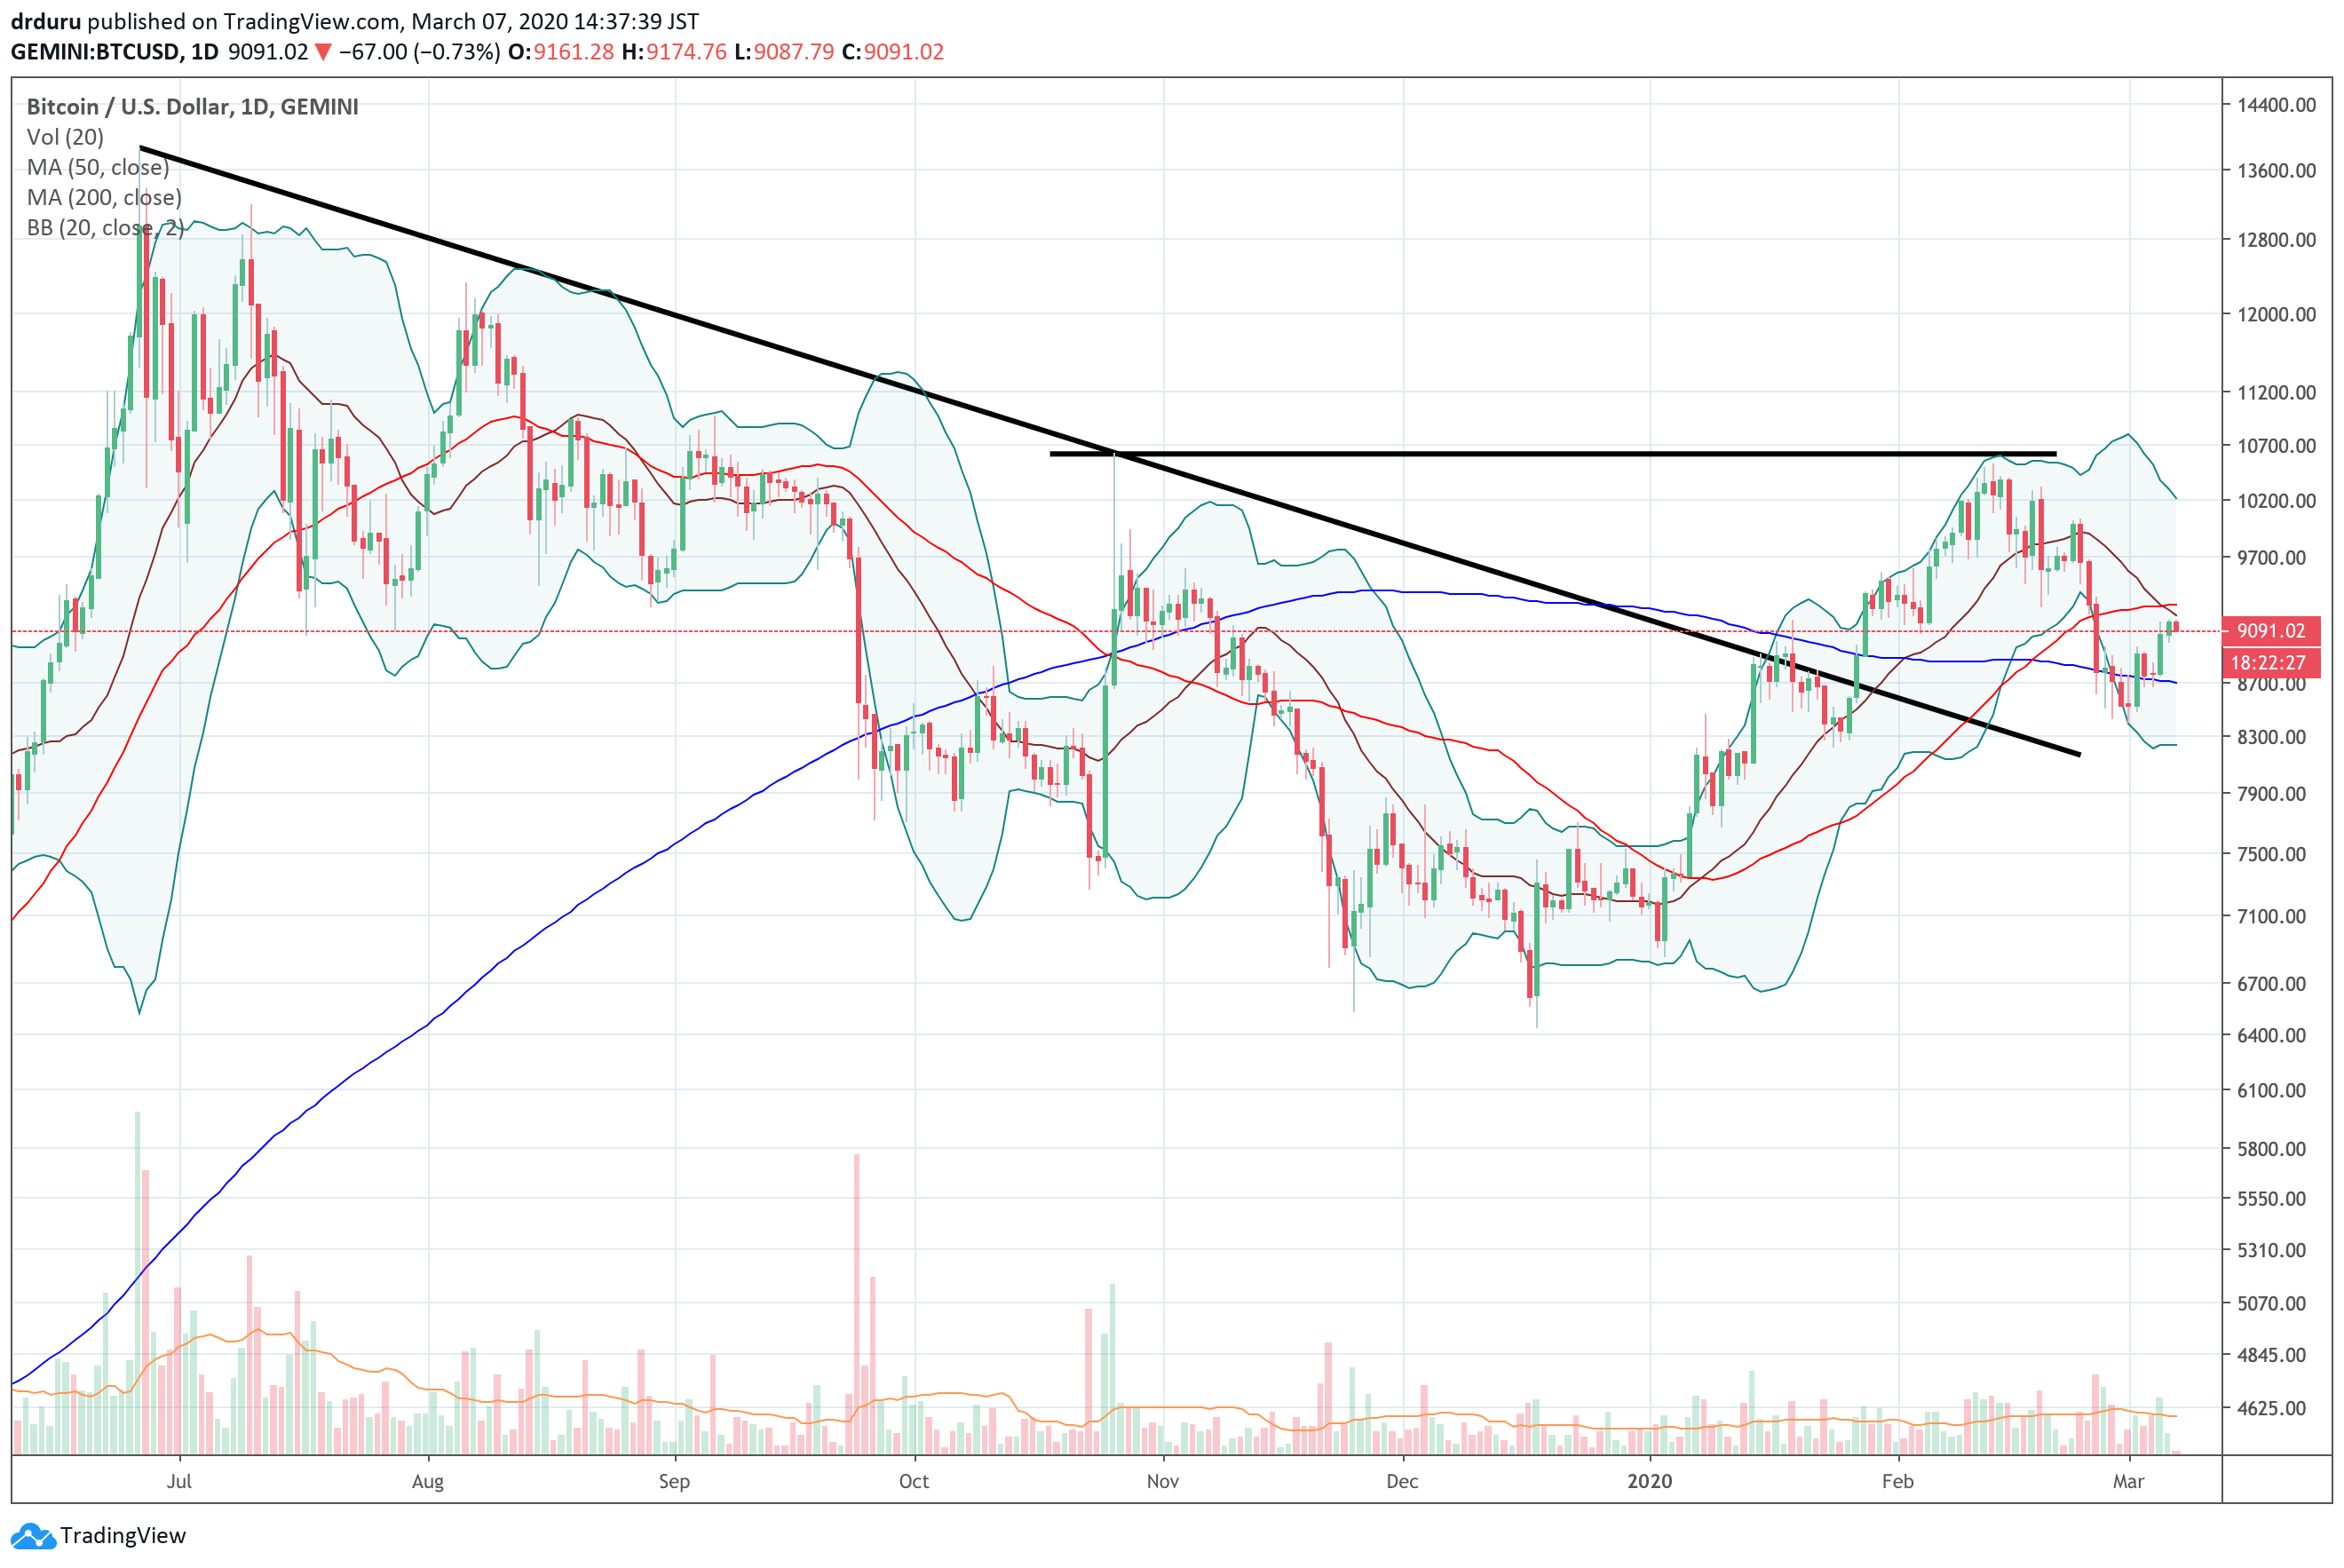 Bitcoin (BTCUSD) increased about 6.7% for the week but remains well off the last peak around 10,700